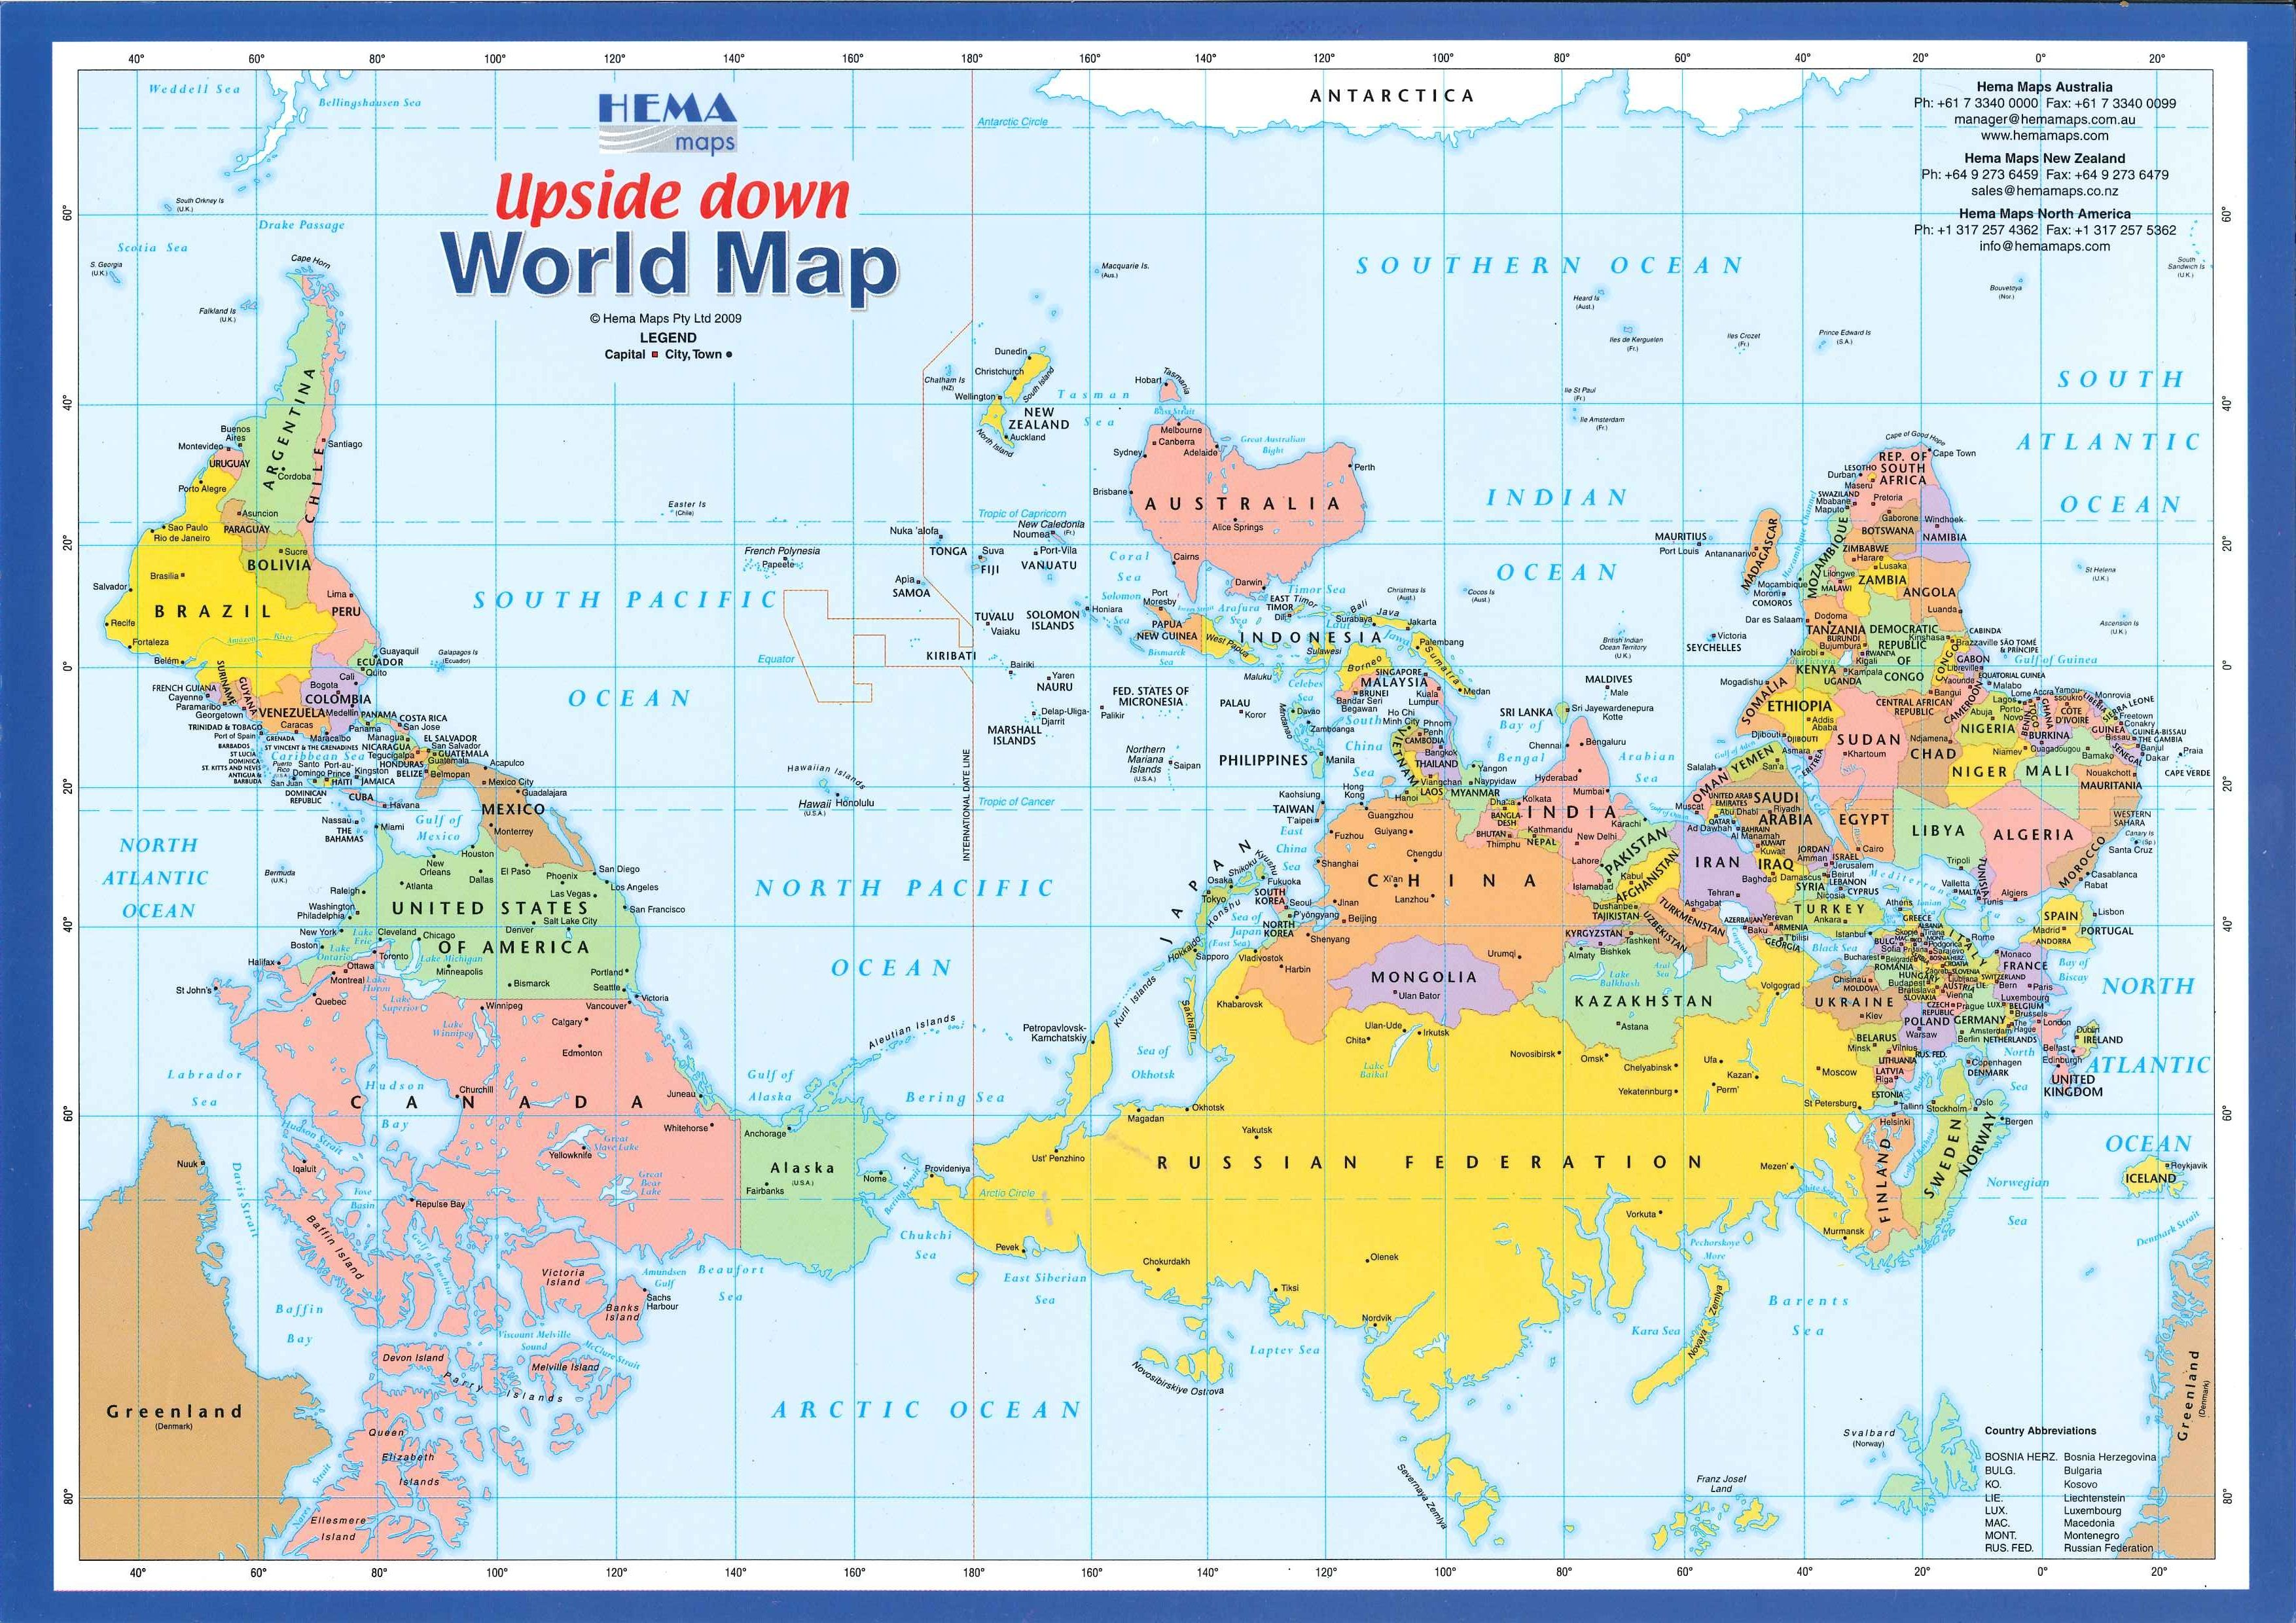 Map with a difference upside down world map 3508 2480px map with a difference upside down world map 3508 2480px by hema maps hemamaps amazing example of how static our education is gumiabroncs Image collections